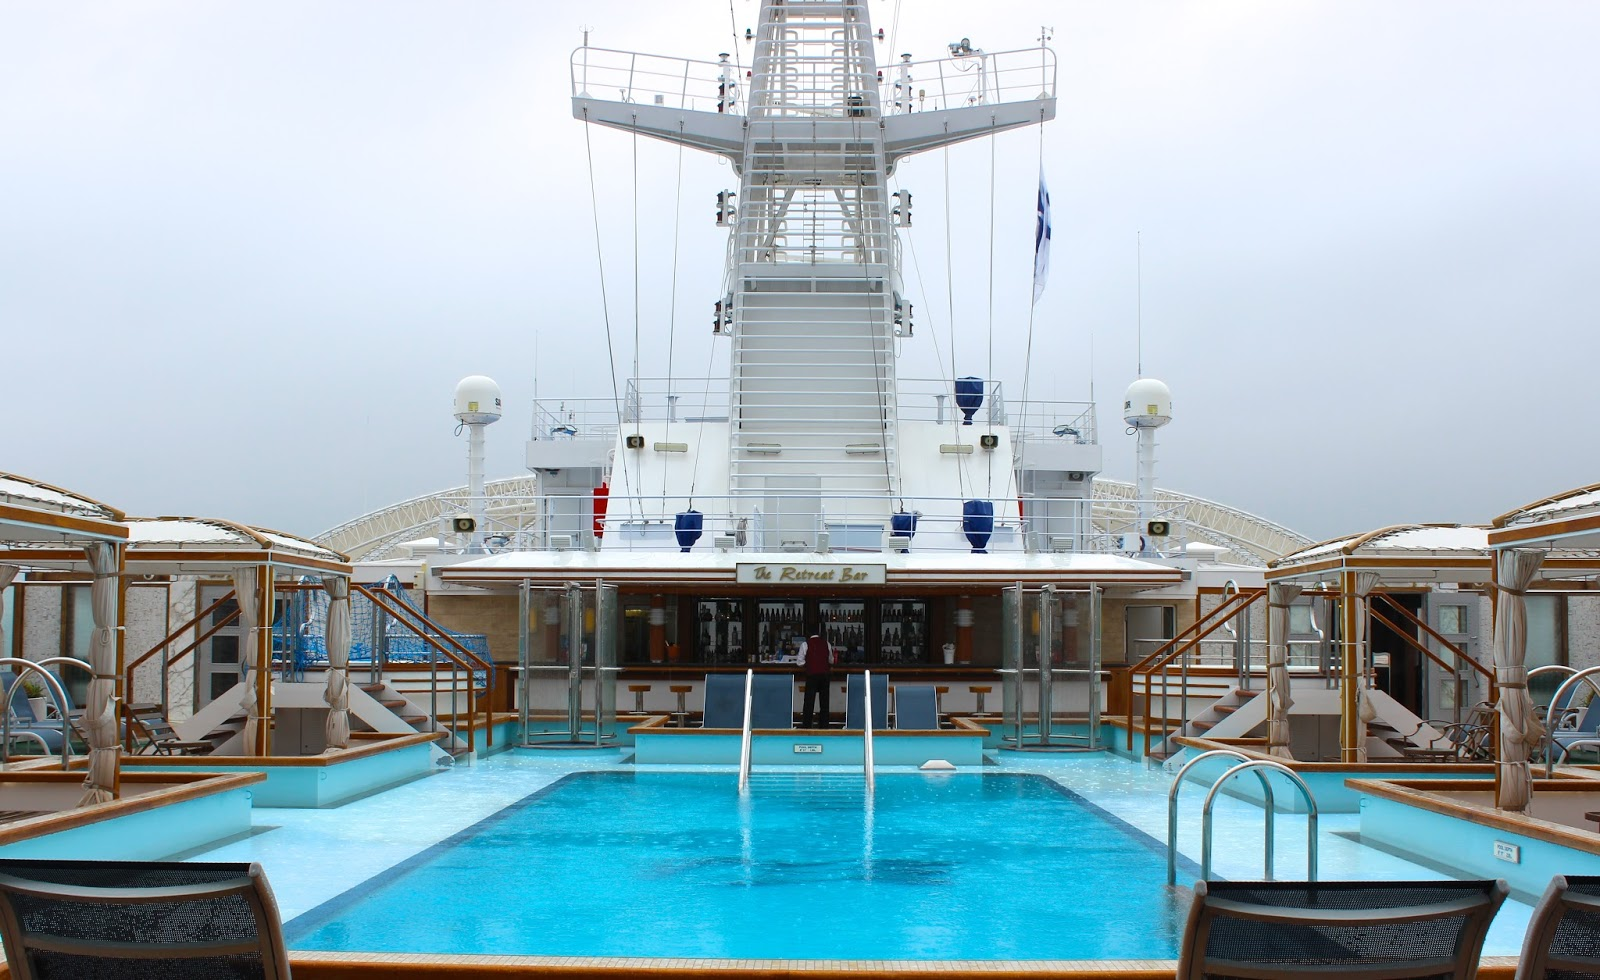 The Royal Princess Cruise Ship - Upper Deck Pool